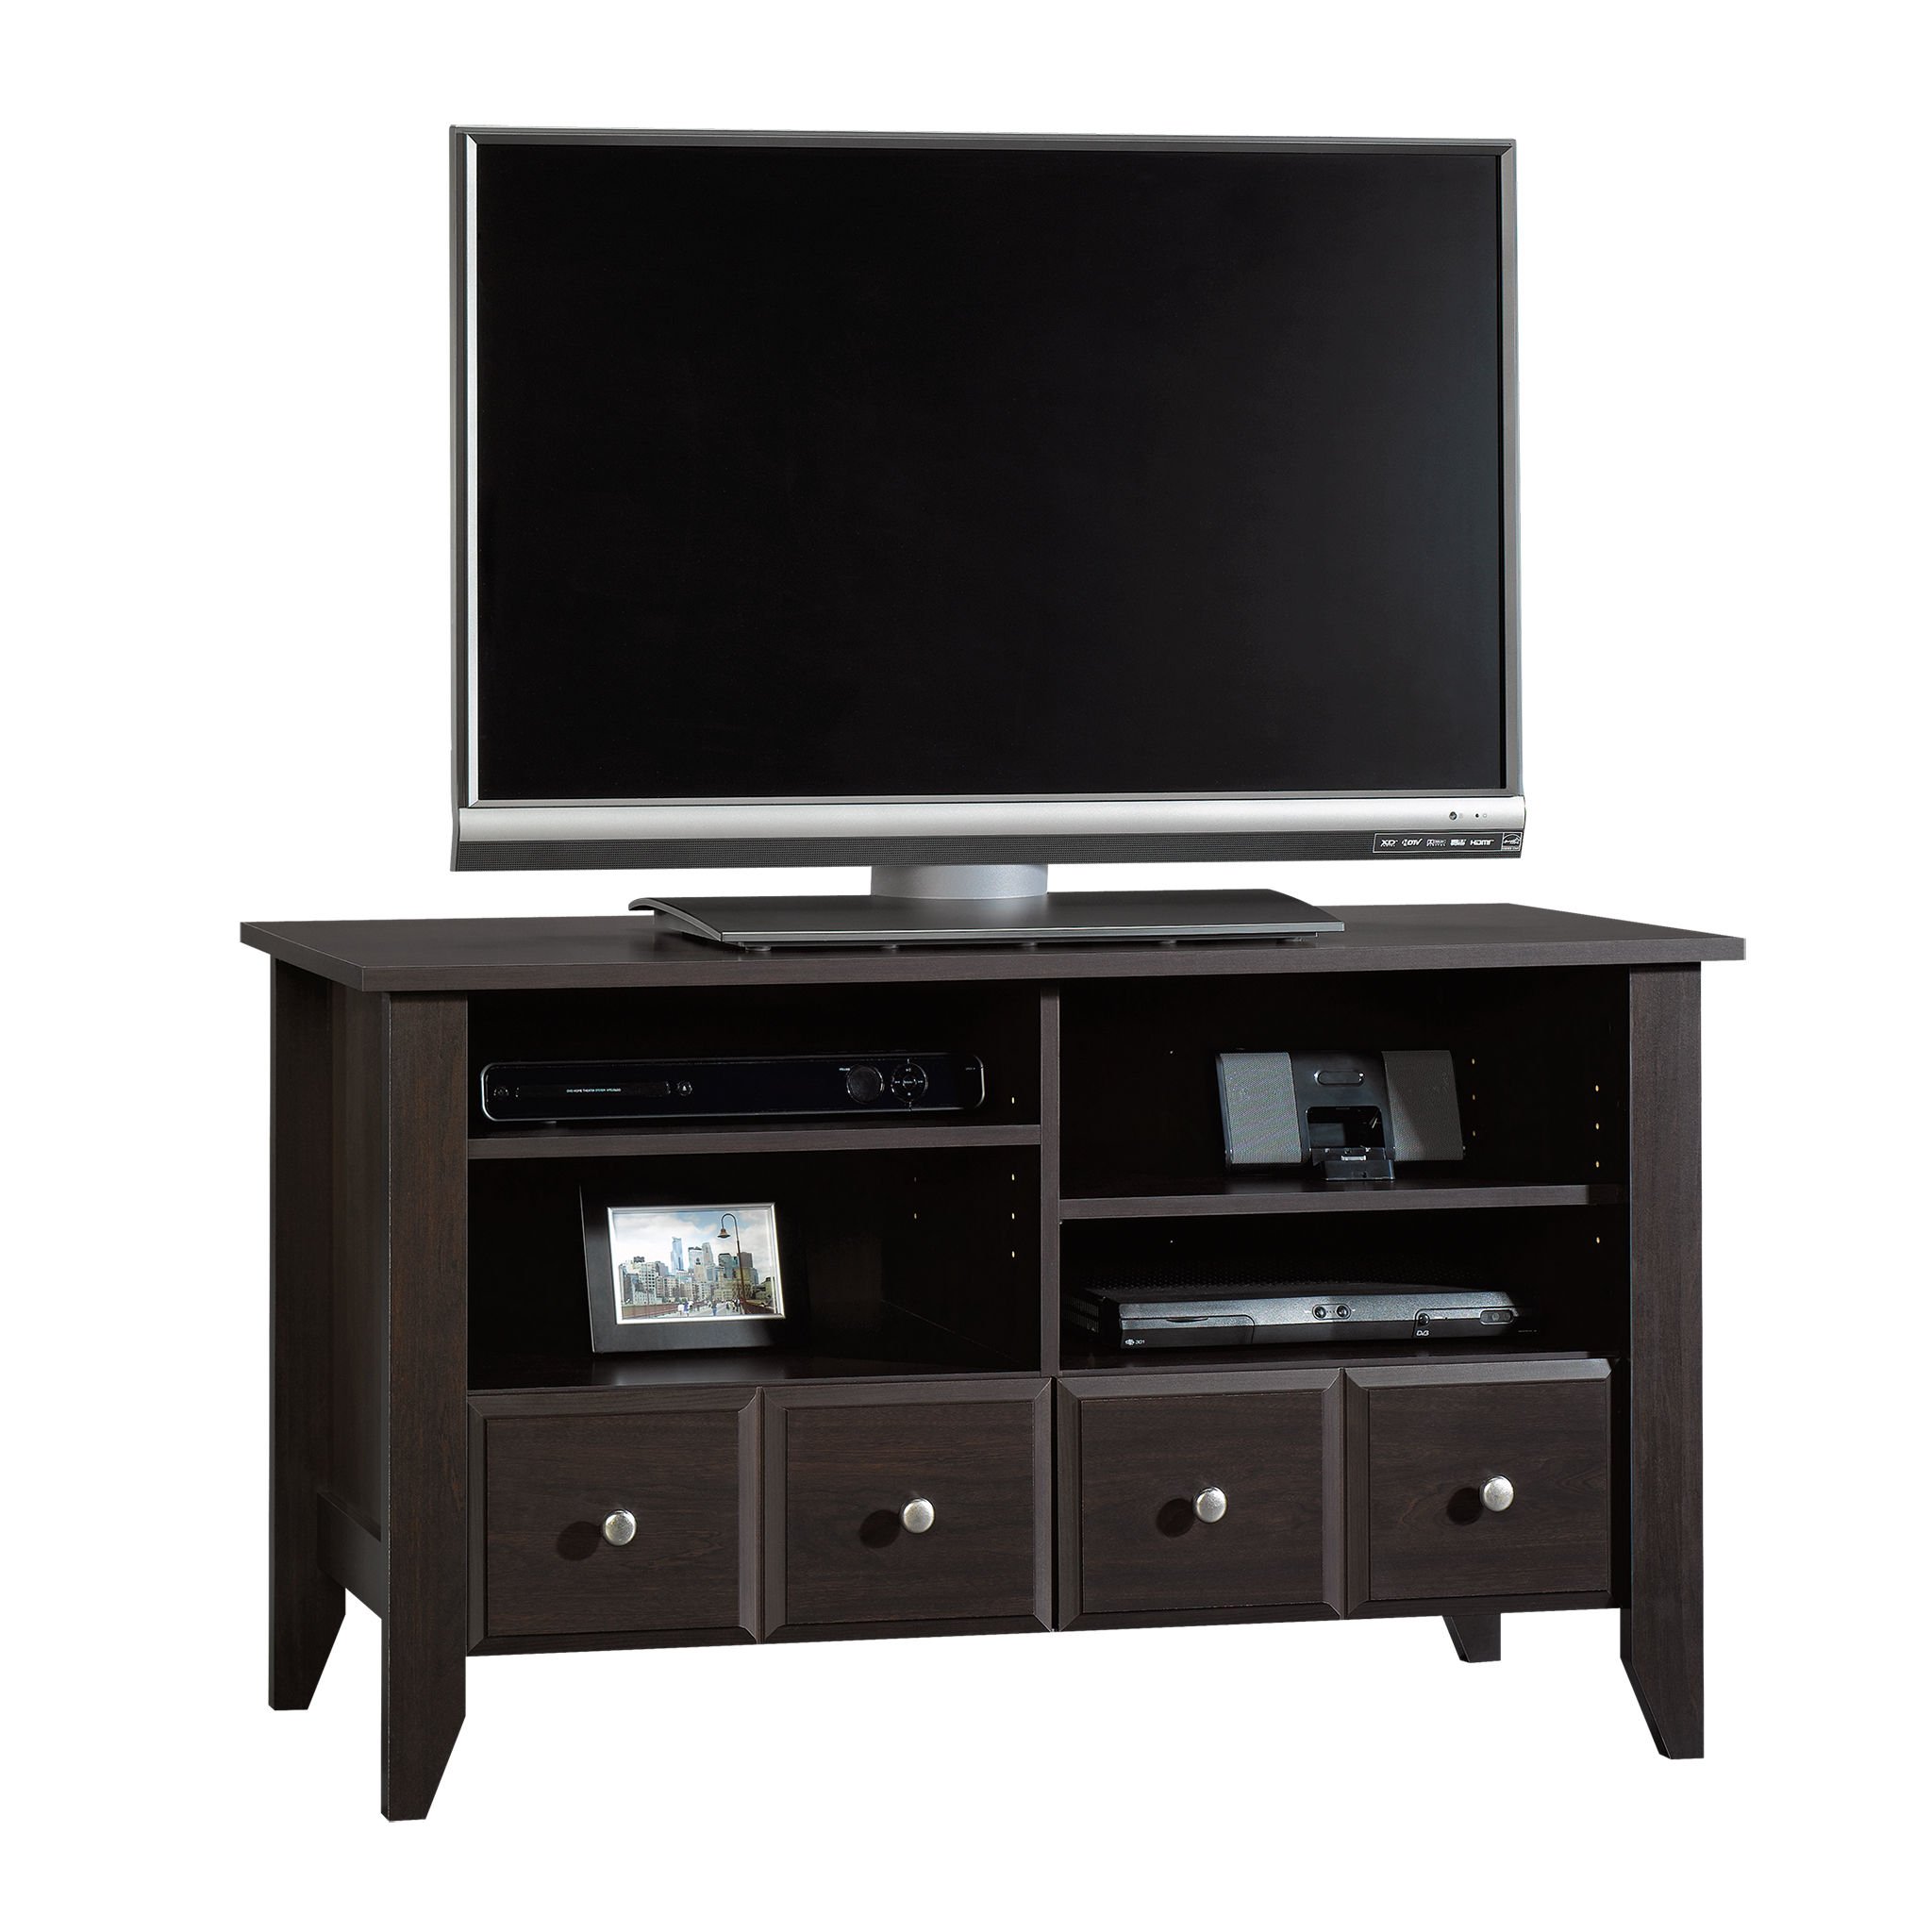 "Sauder Shoal Creek Panel TV Stand for TVs up to 42"", Jamocha Wood Finish"